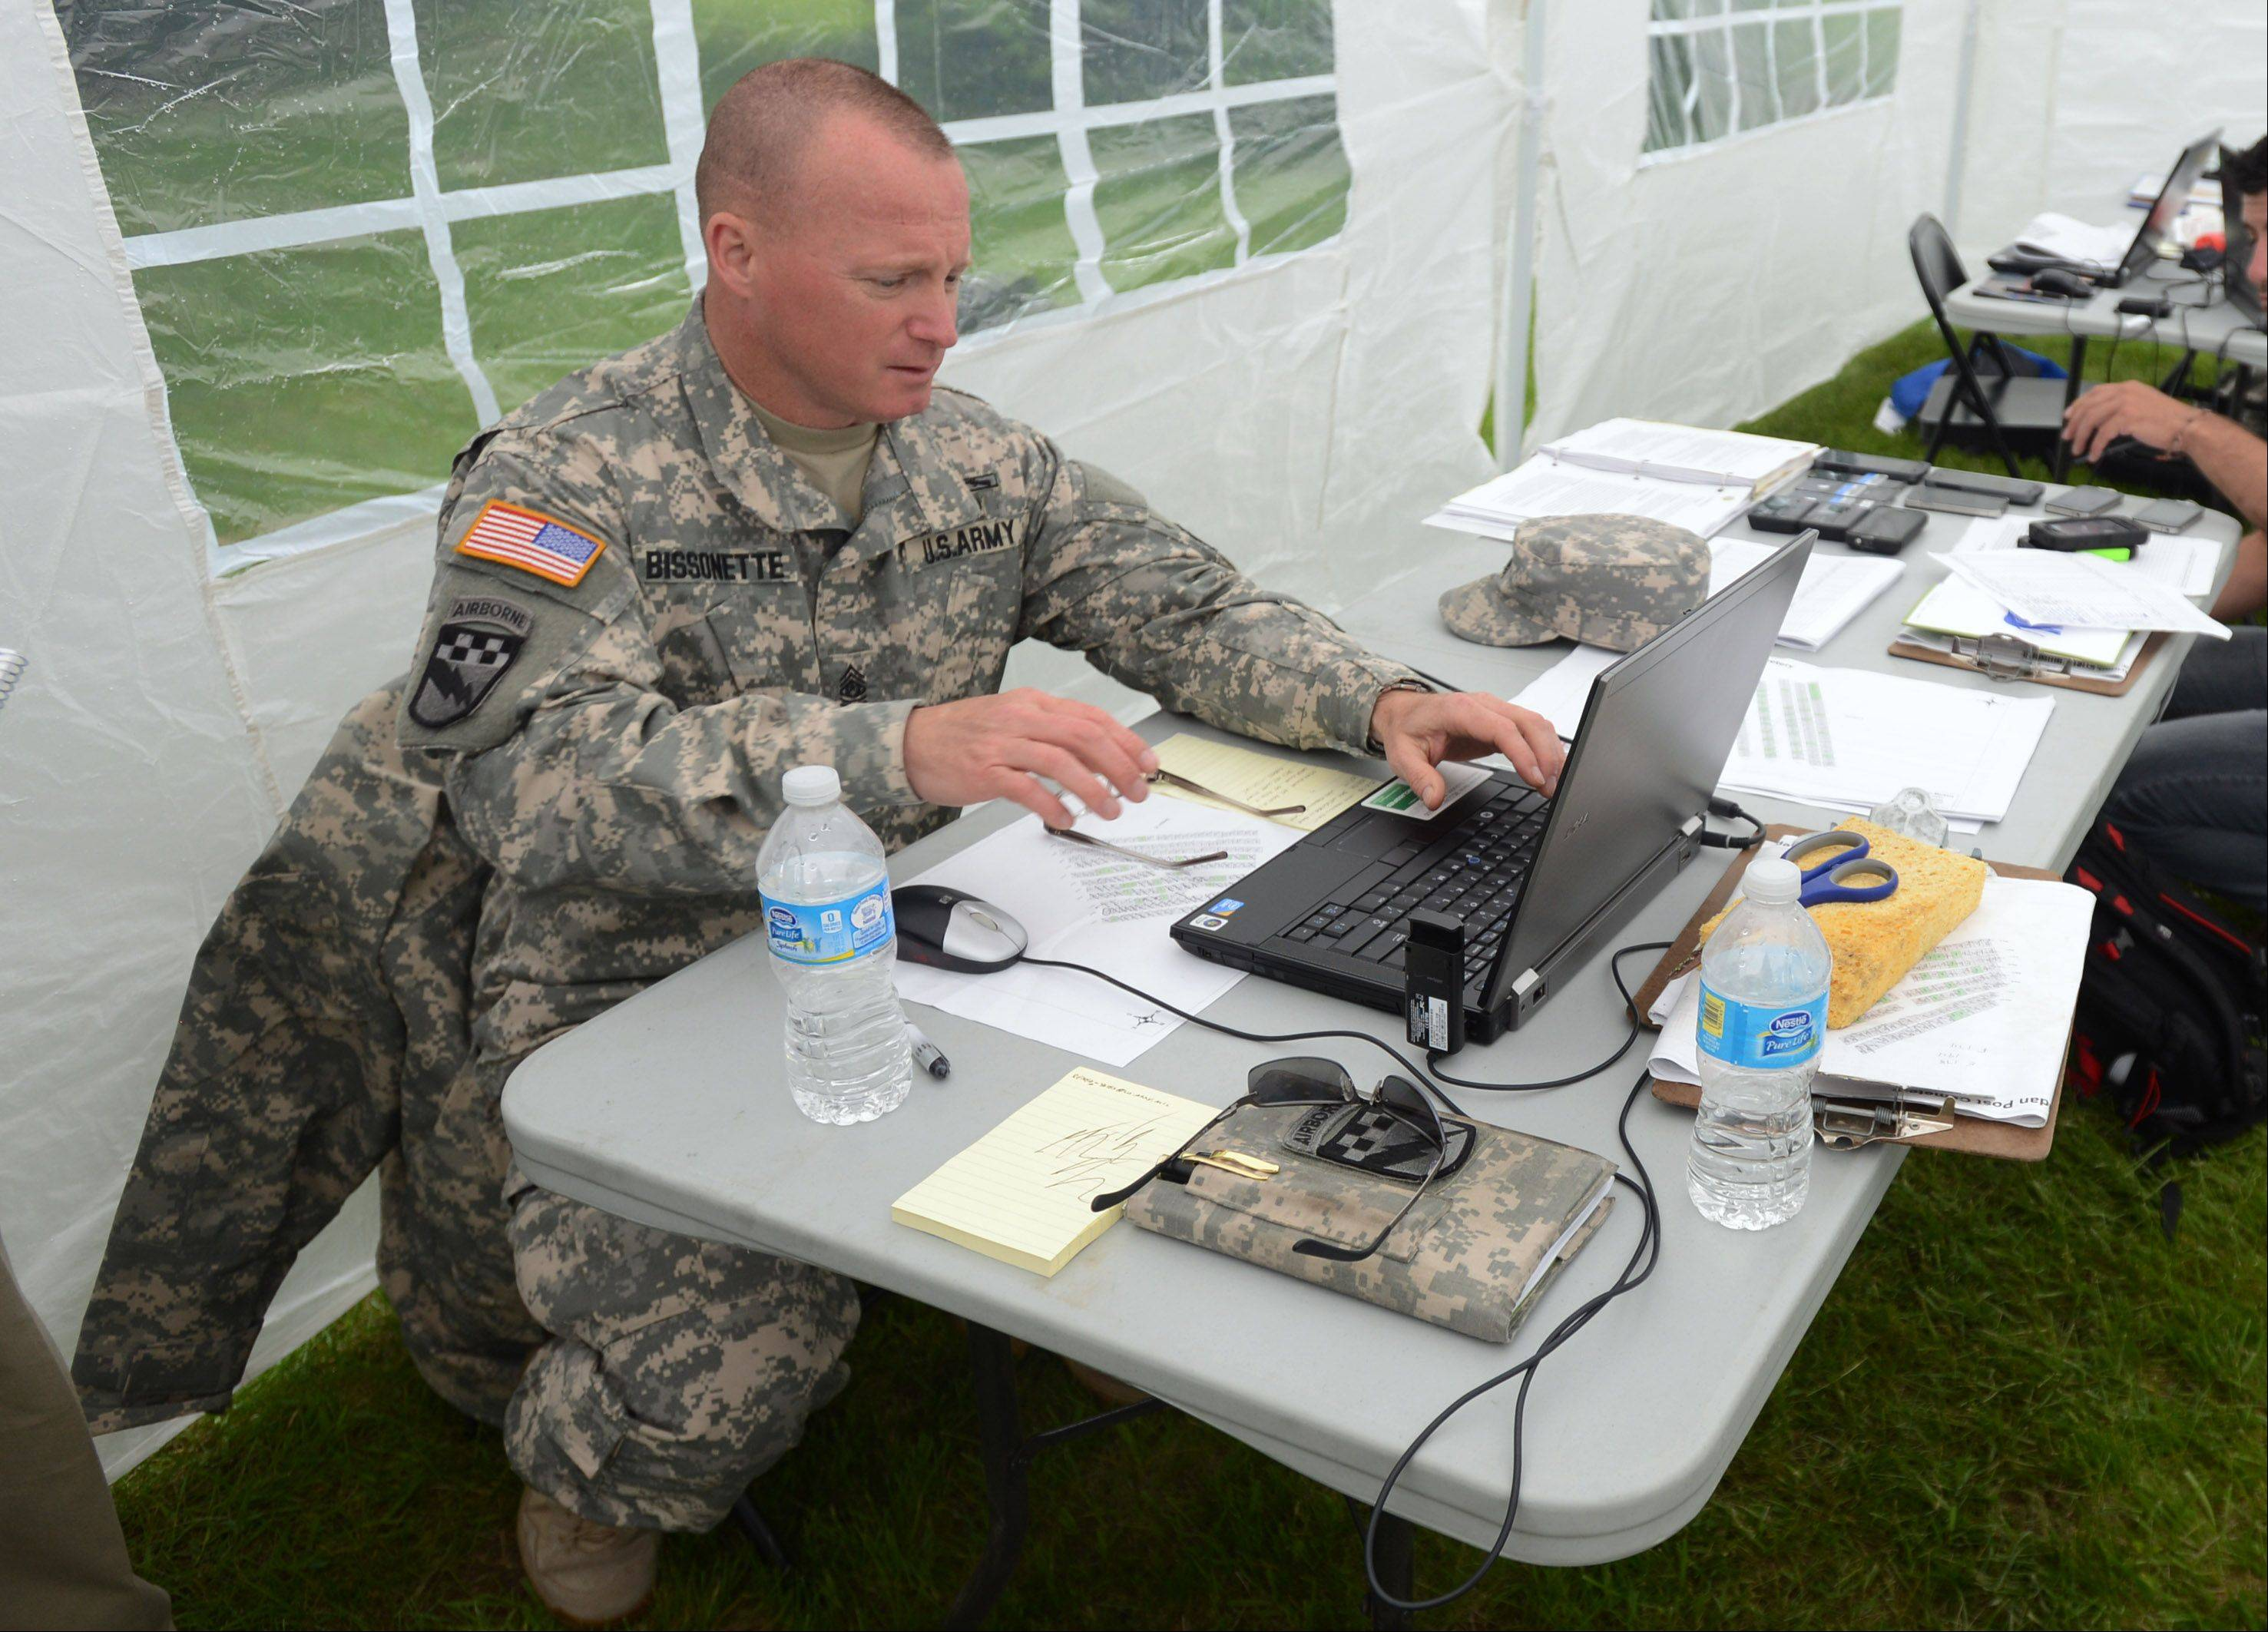 Sgt. Maj. Bill Bissonette from Fort McCoy in Wisconsin works in a tent where information is gathered and processed at the Fort Sheridan Cemetery.